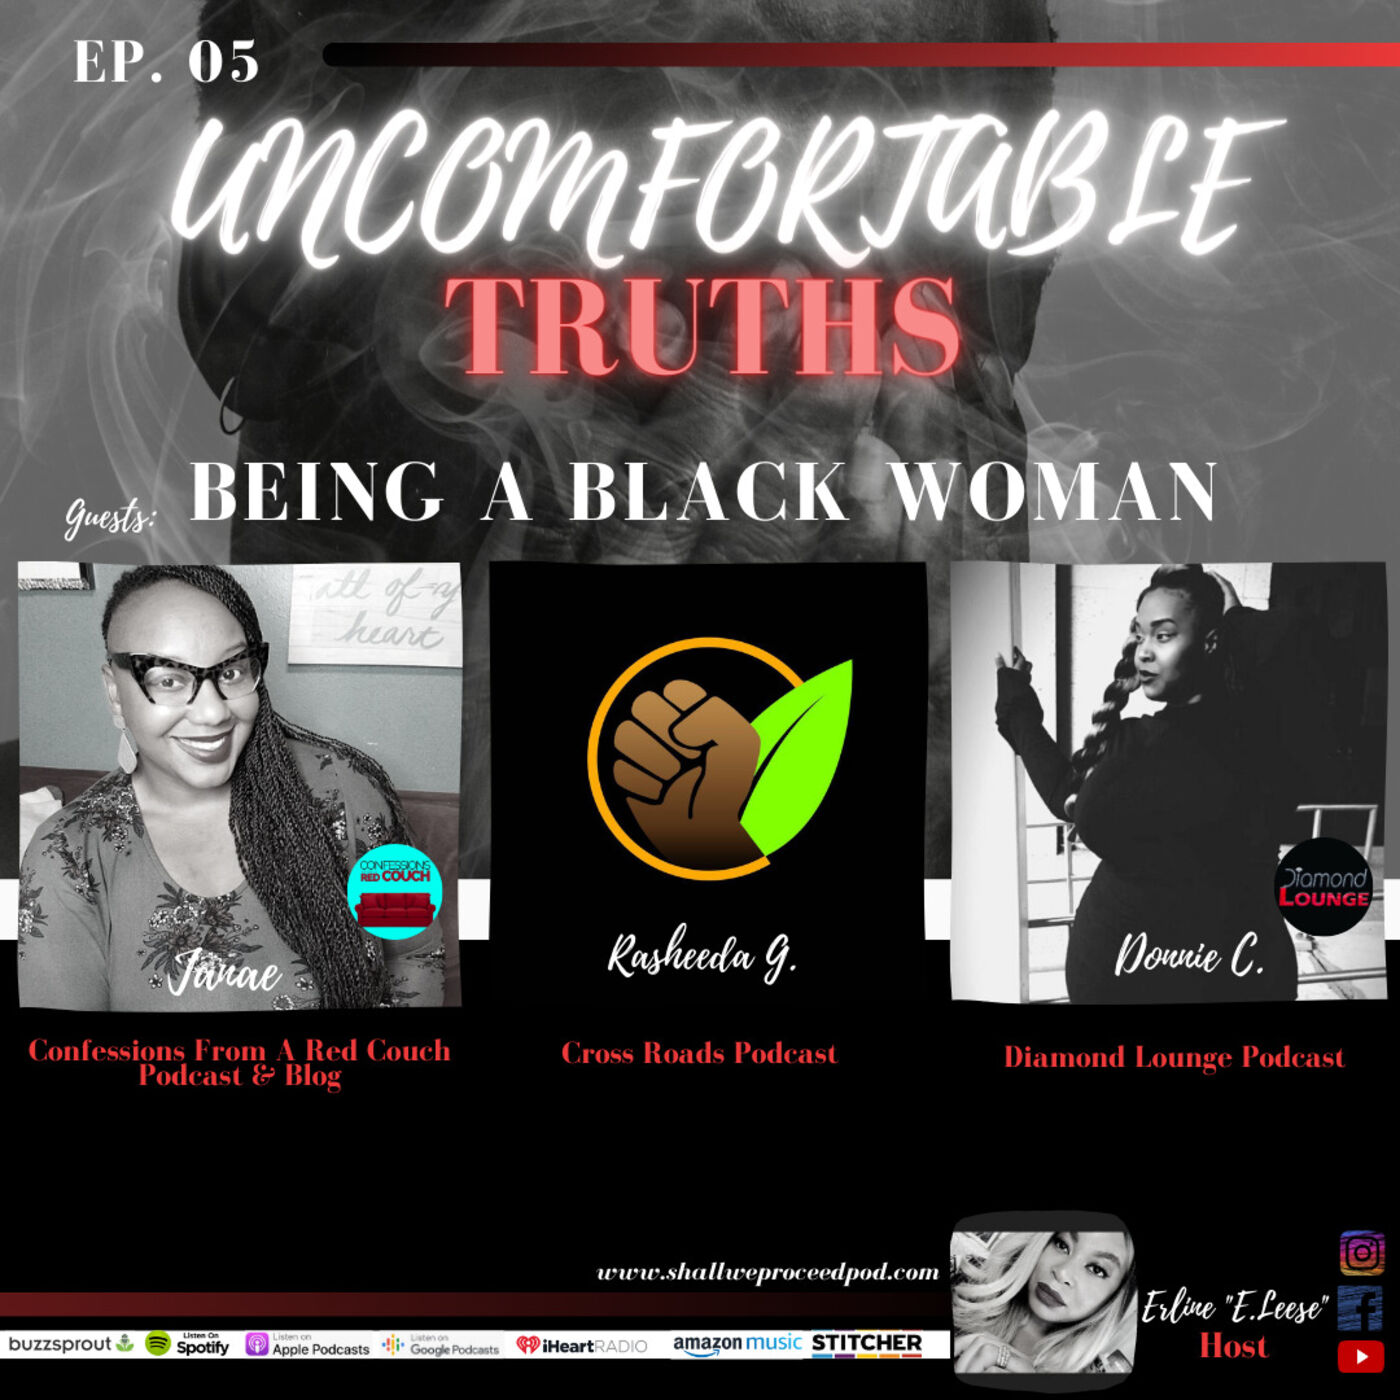 Being a Black Woman in Society